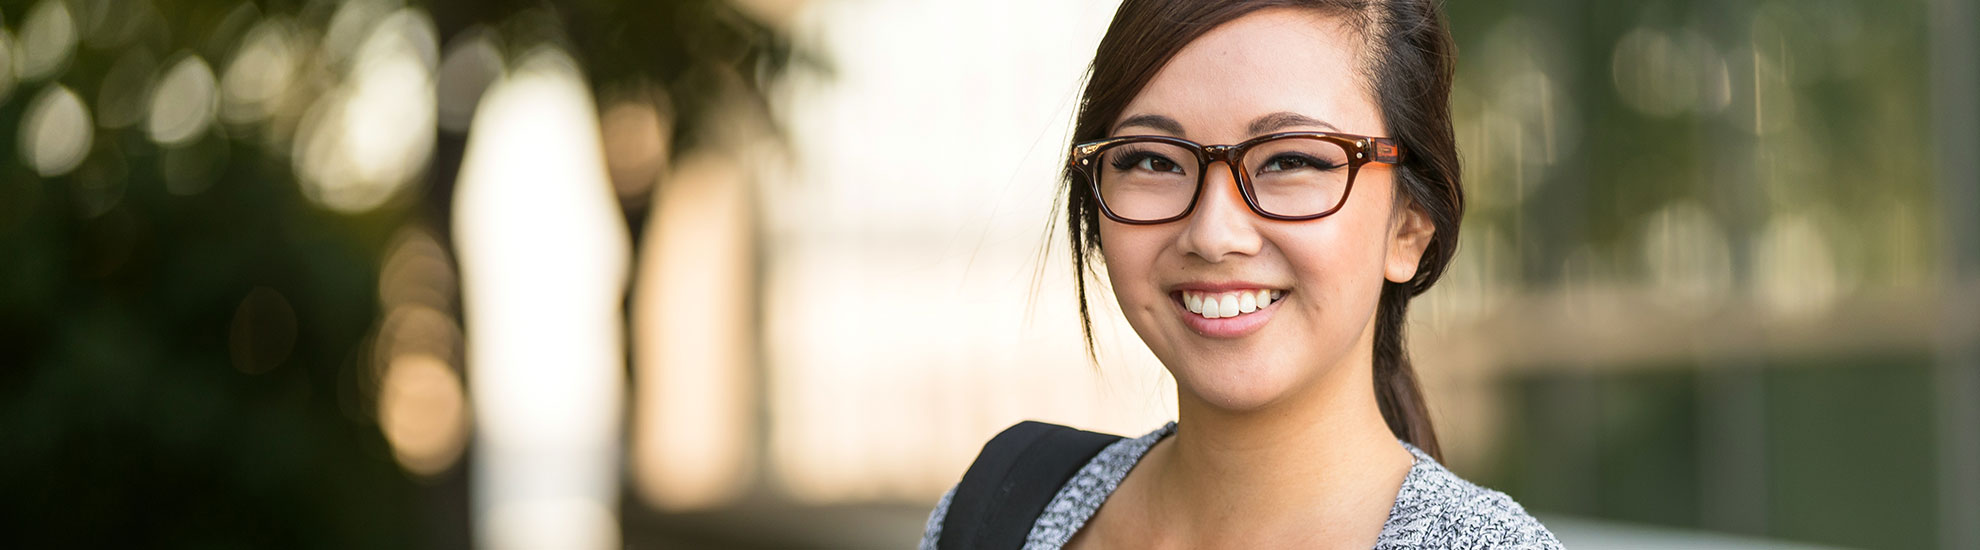 Young woman smiling outsides wearing glasses